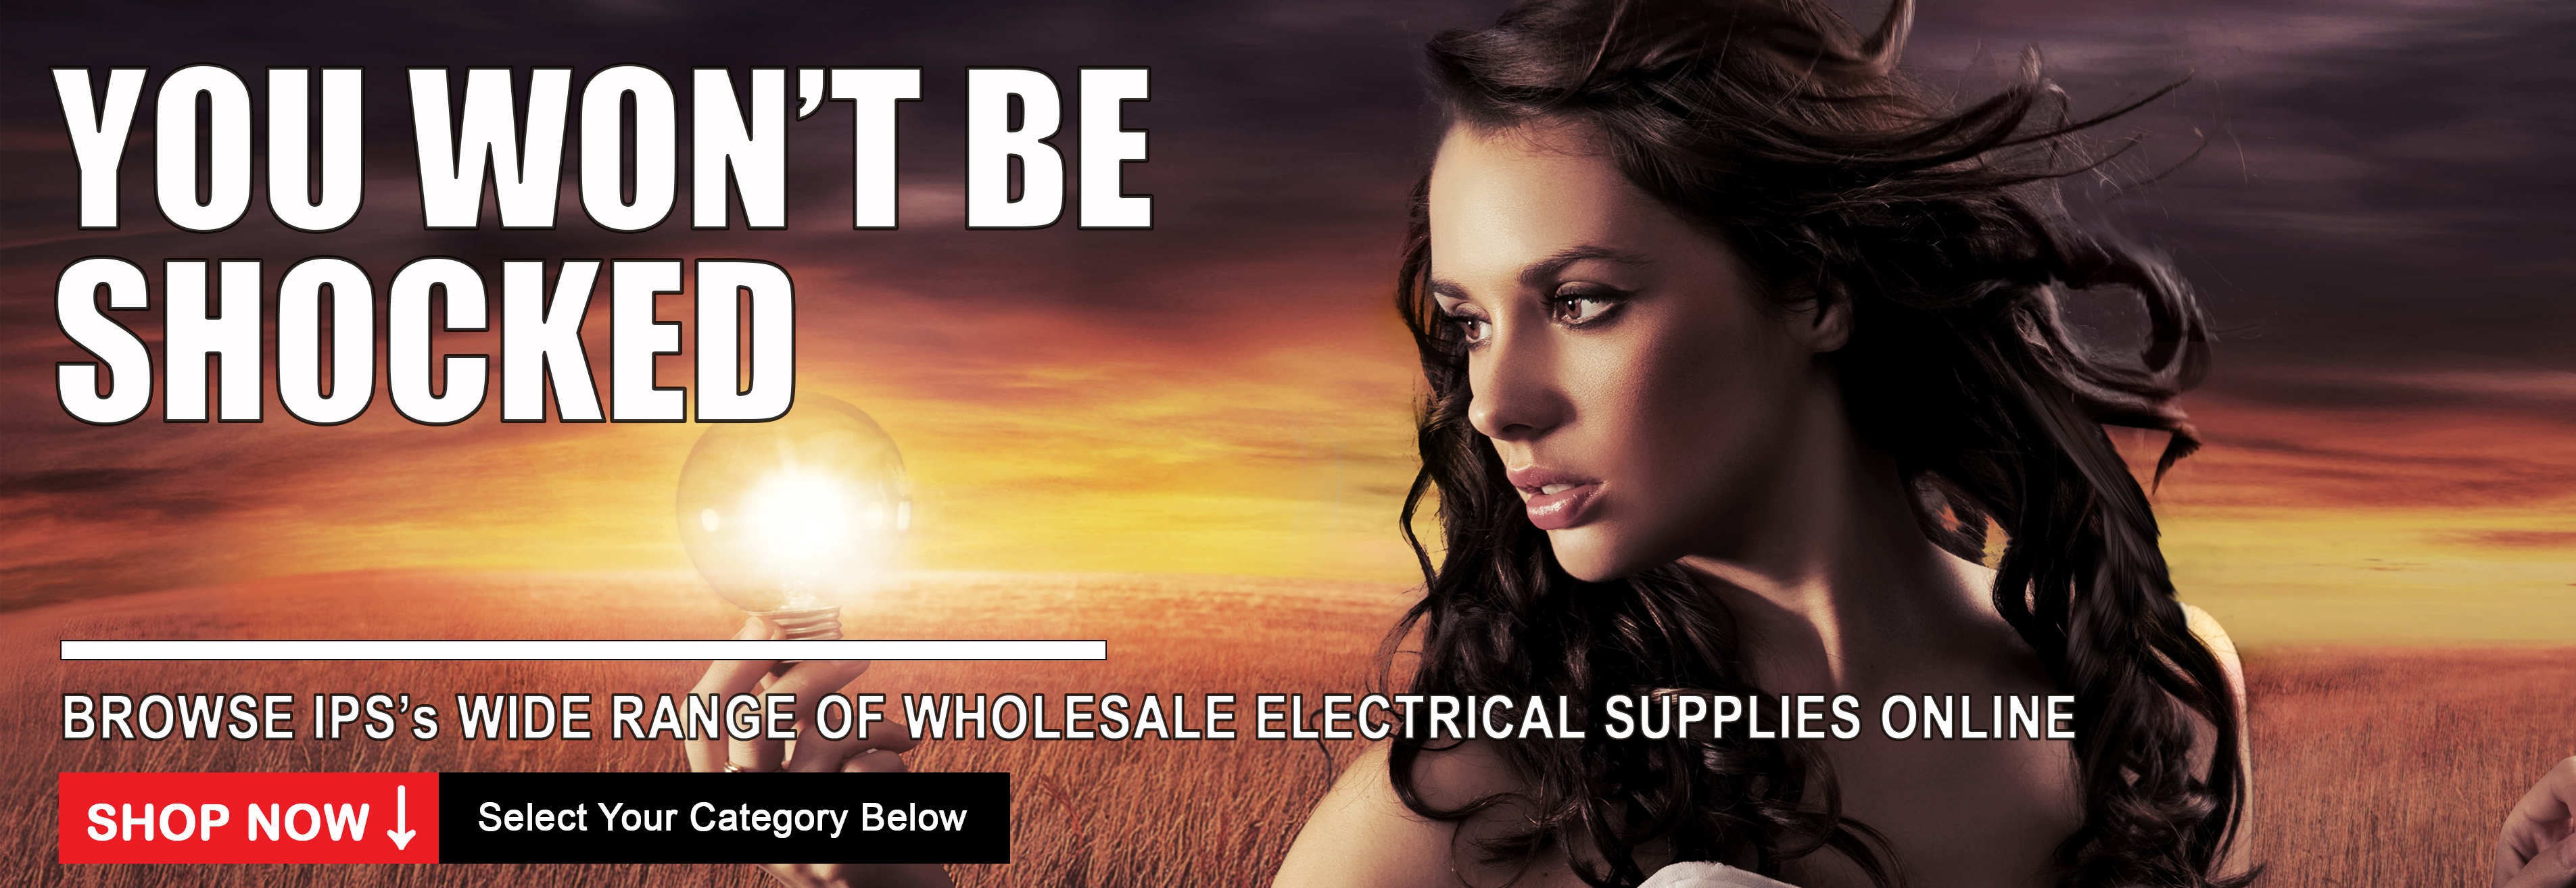 Installation Parts Supply offers wide range of wholesale electrical supplies online.